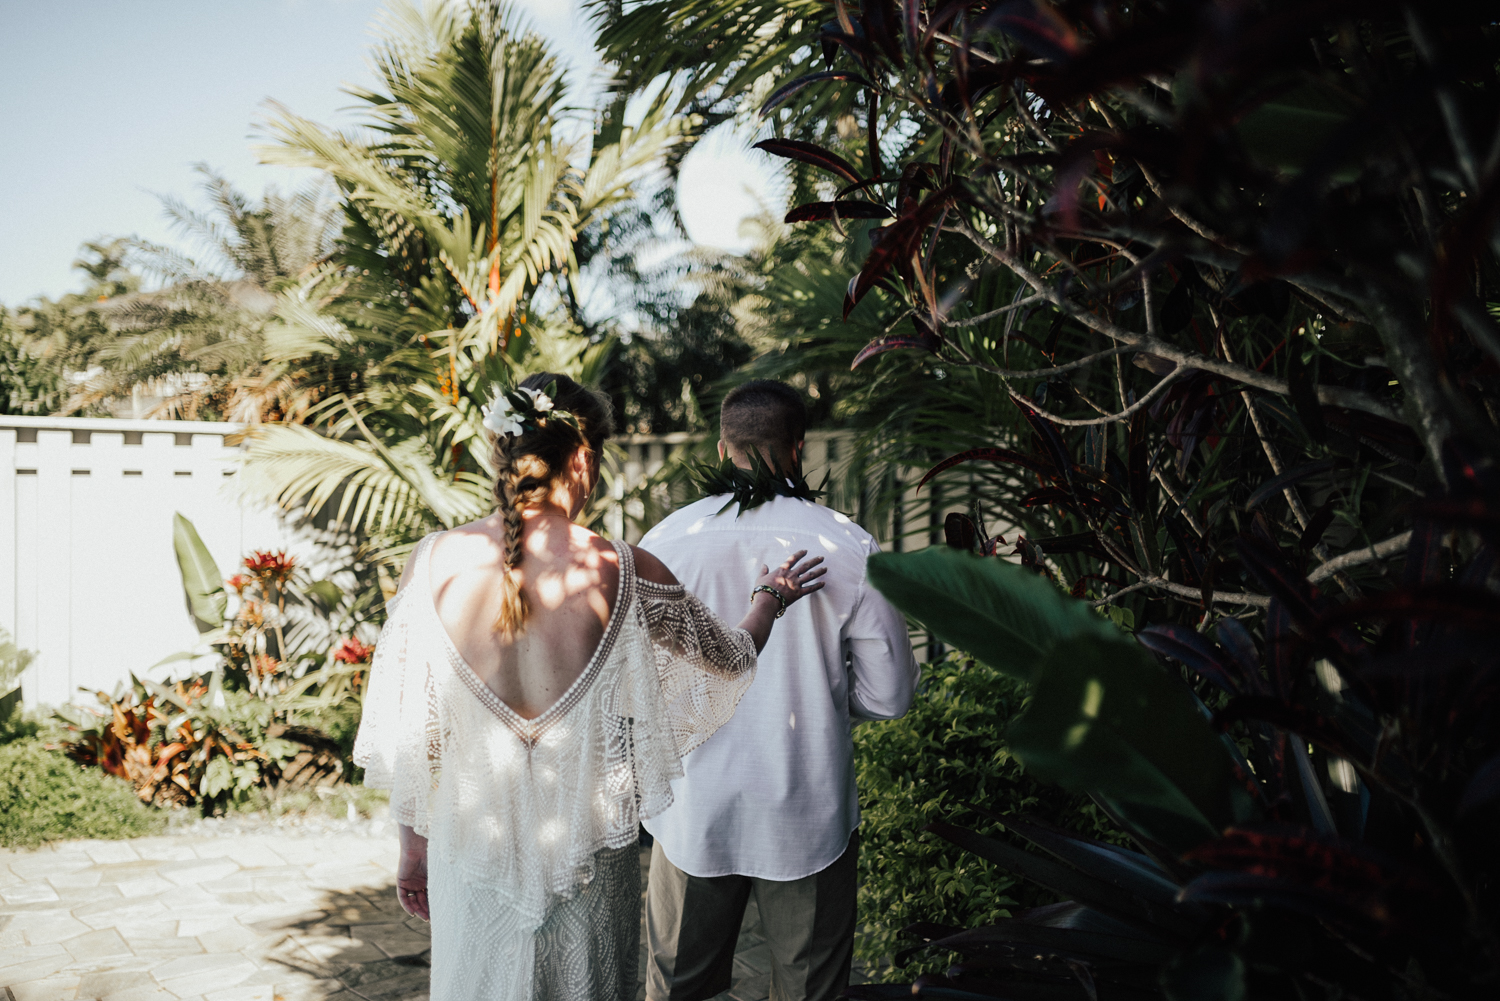 Kauai-elopement-photographer-12.jpg